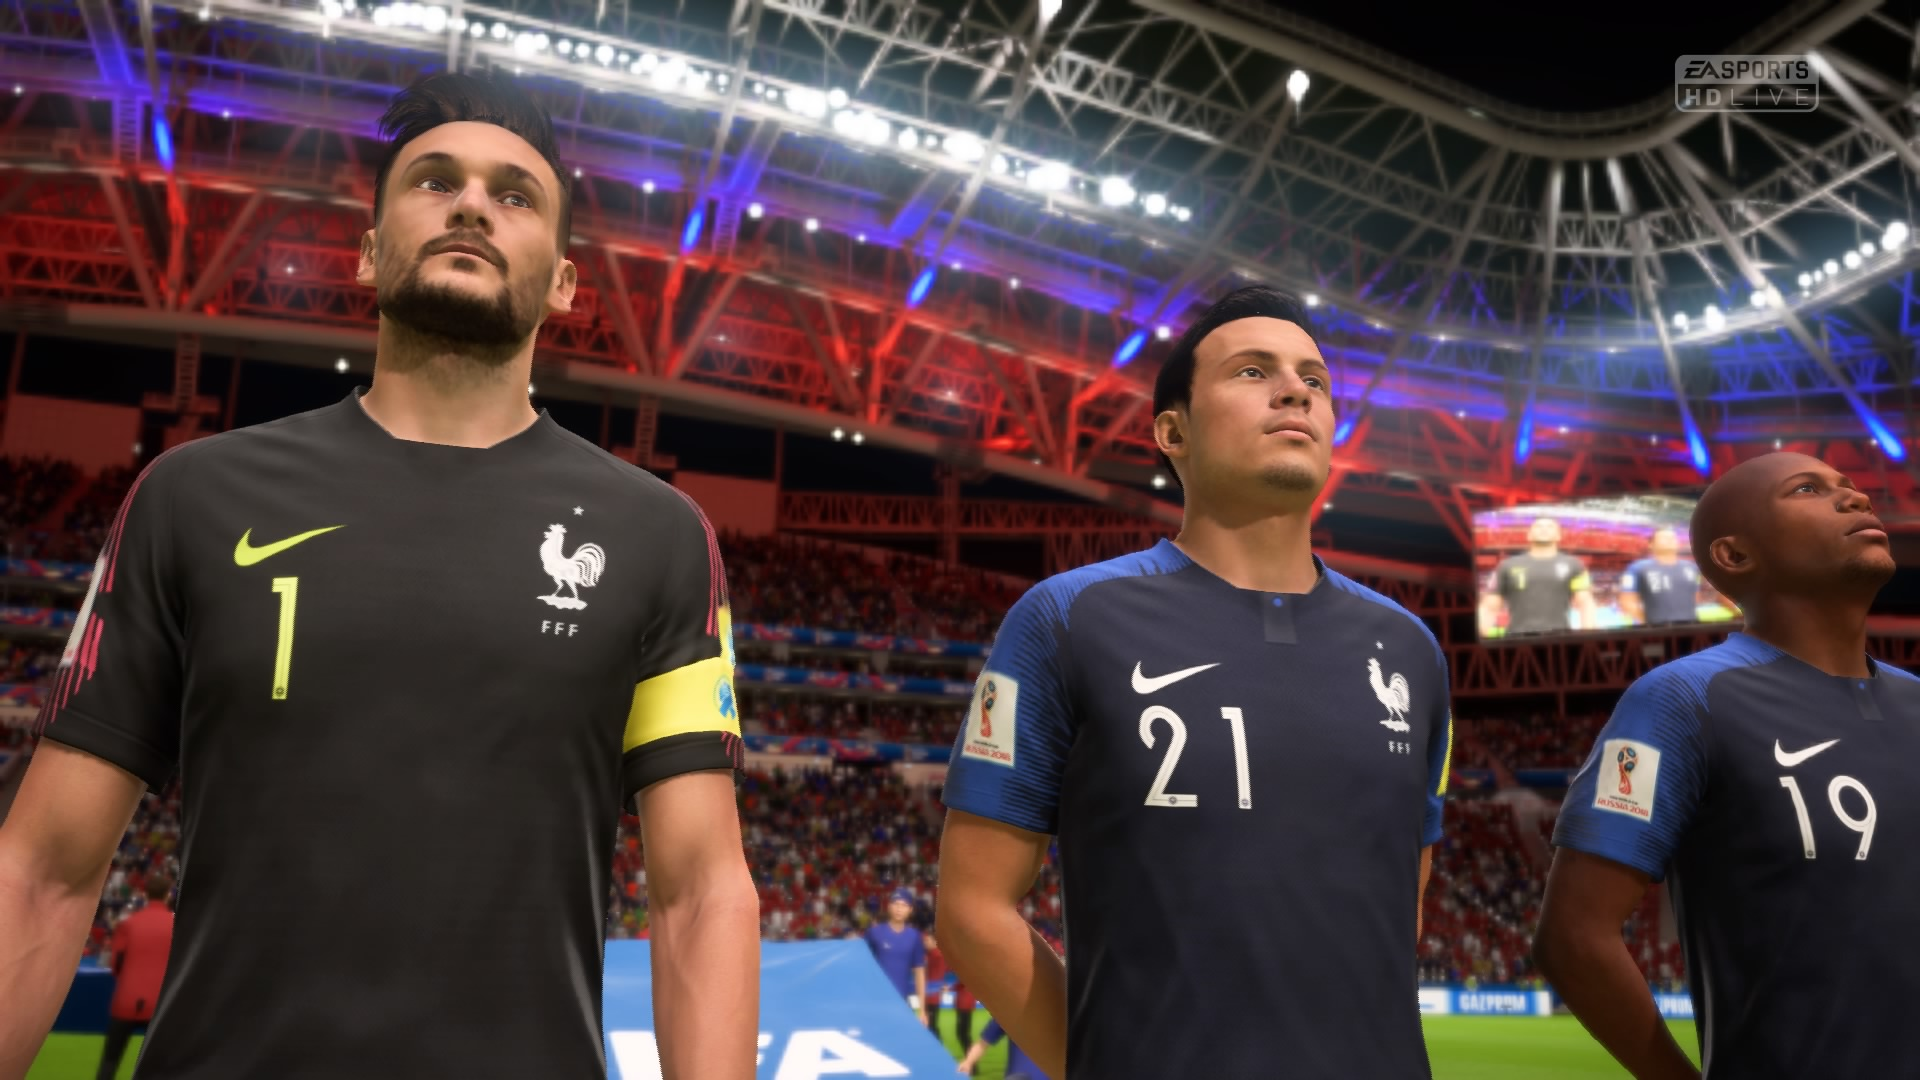 test du dlc coupe du monde fifa 18 occasion manqu e. Black Bedroom Furniture Sets. Home Design Ideas